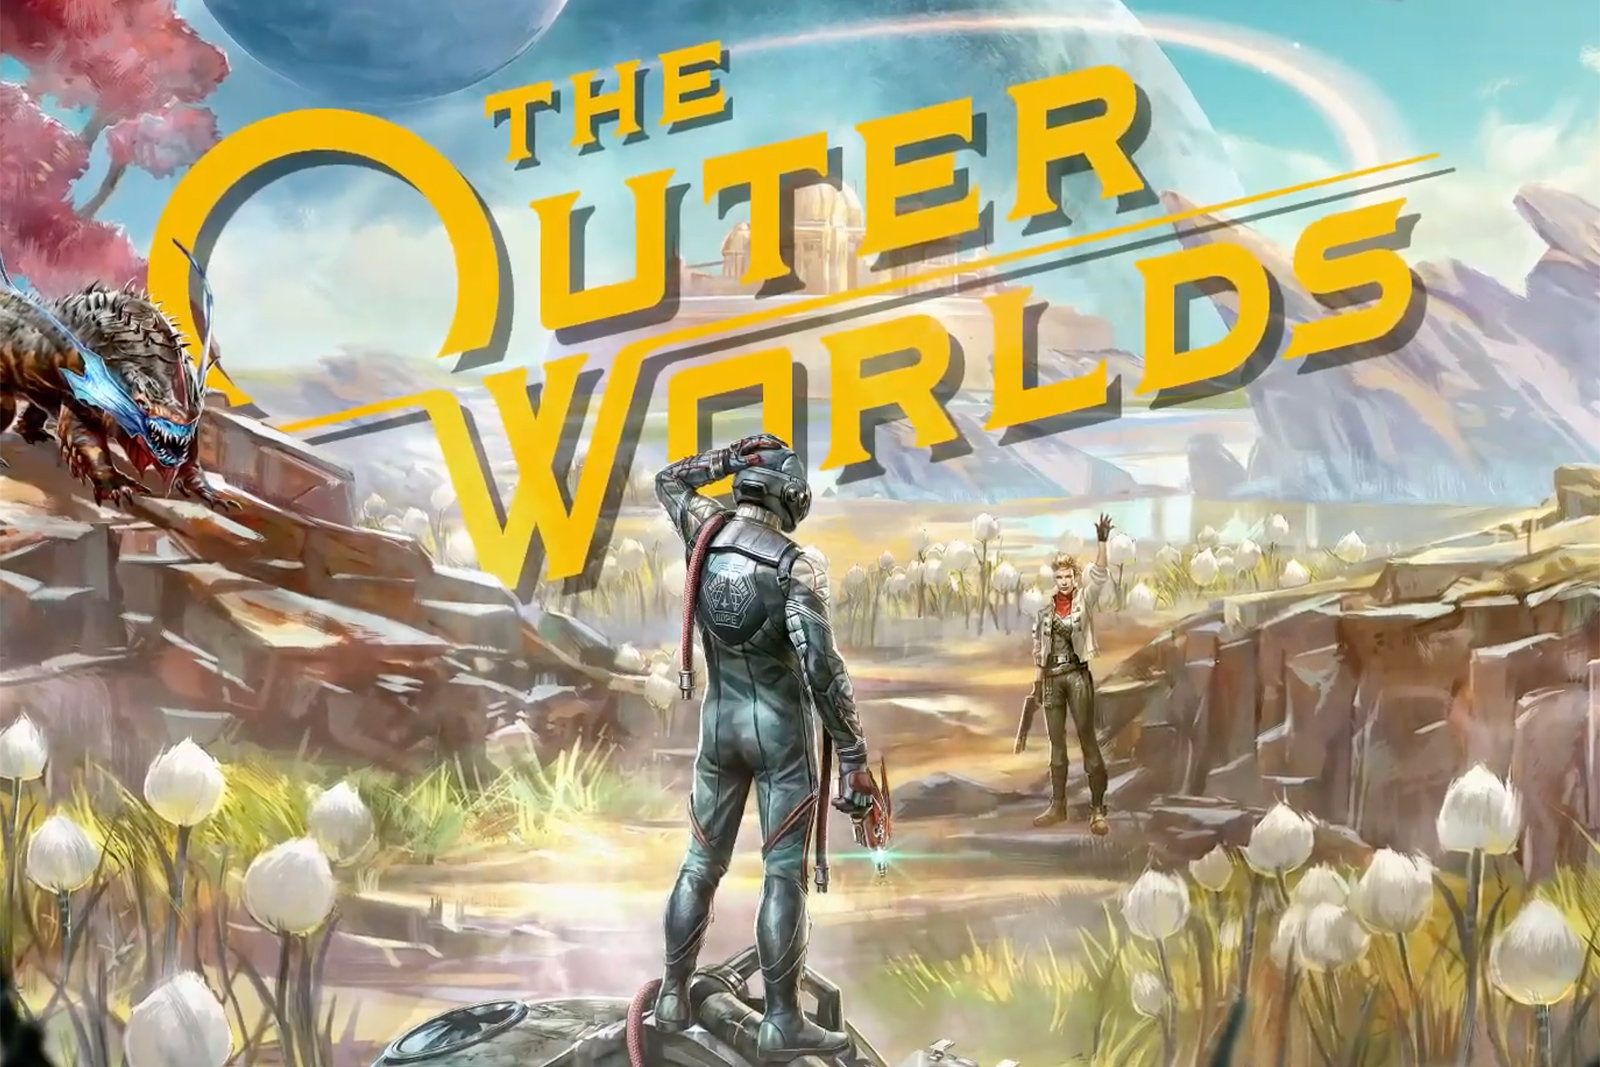 The Outer Worlds is coming to the Nintendo Switch this March